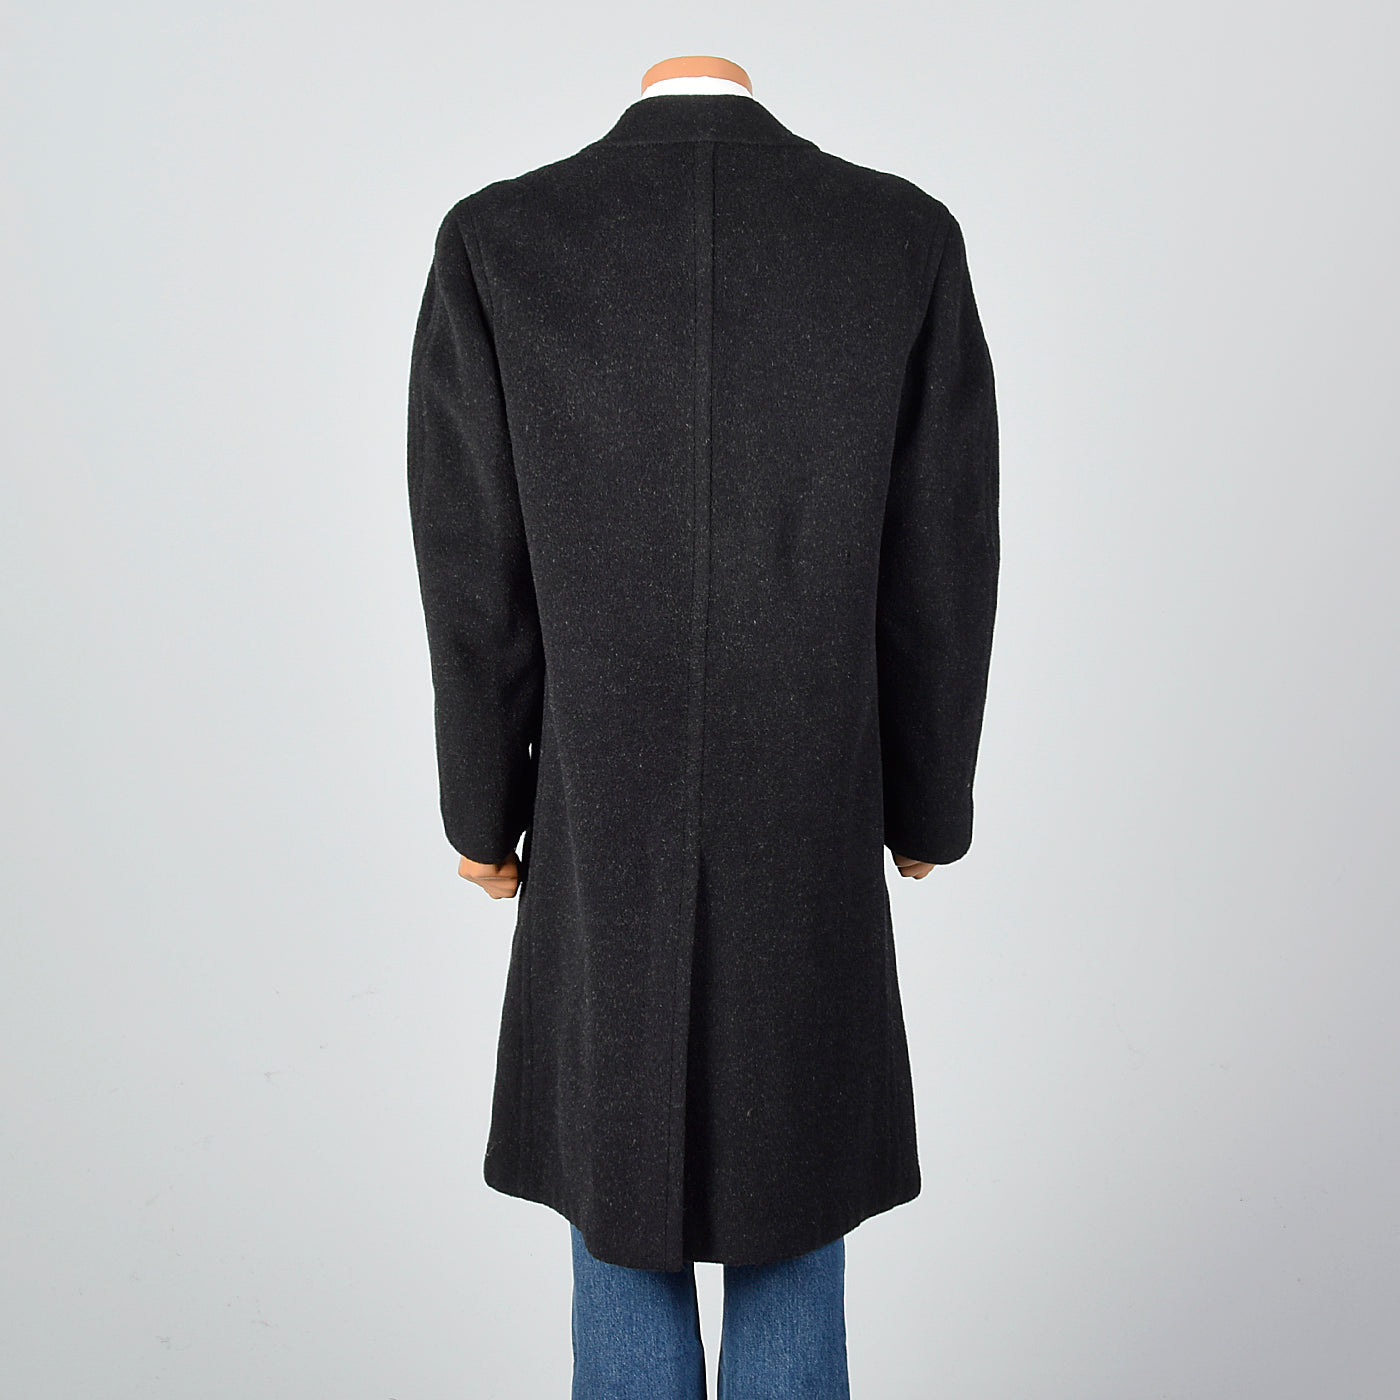 1940s Mens Black Mohair Overcoat